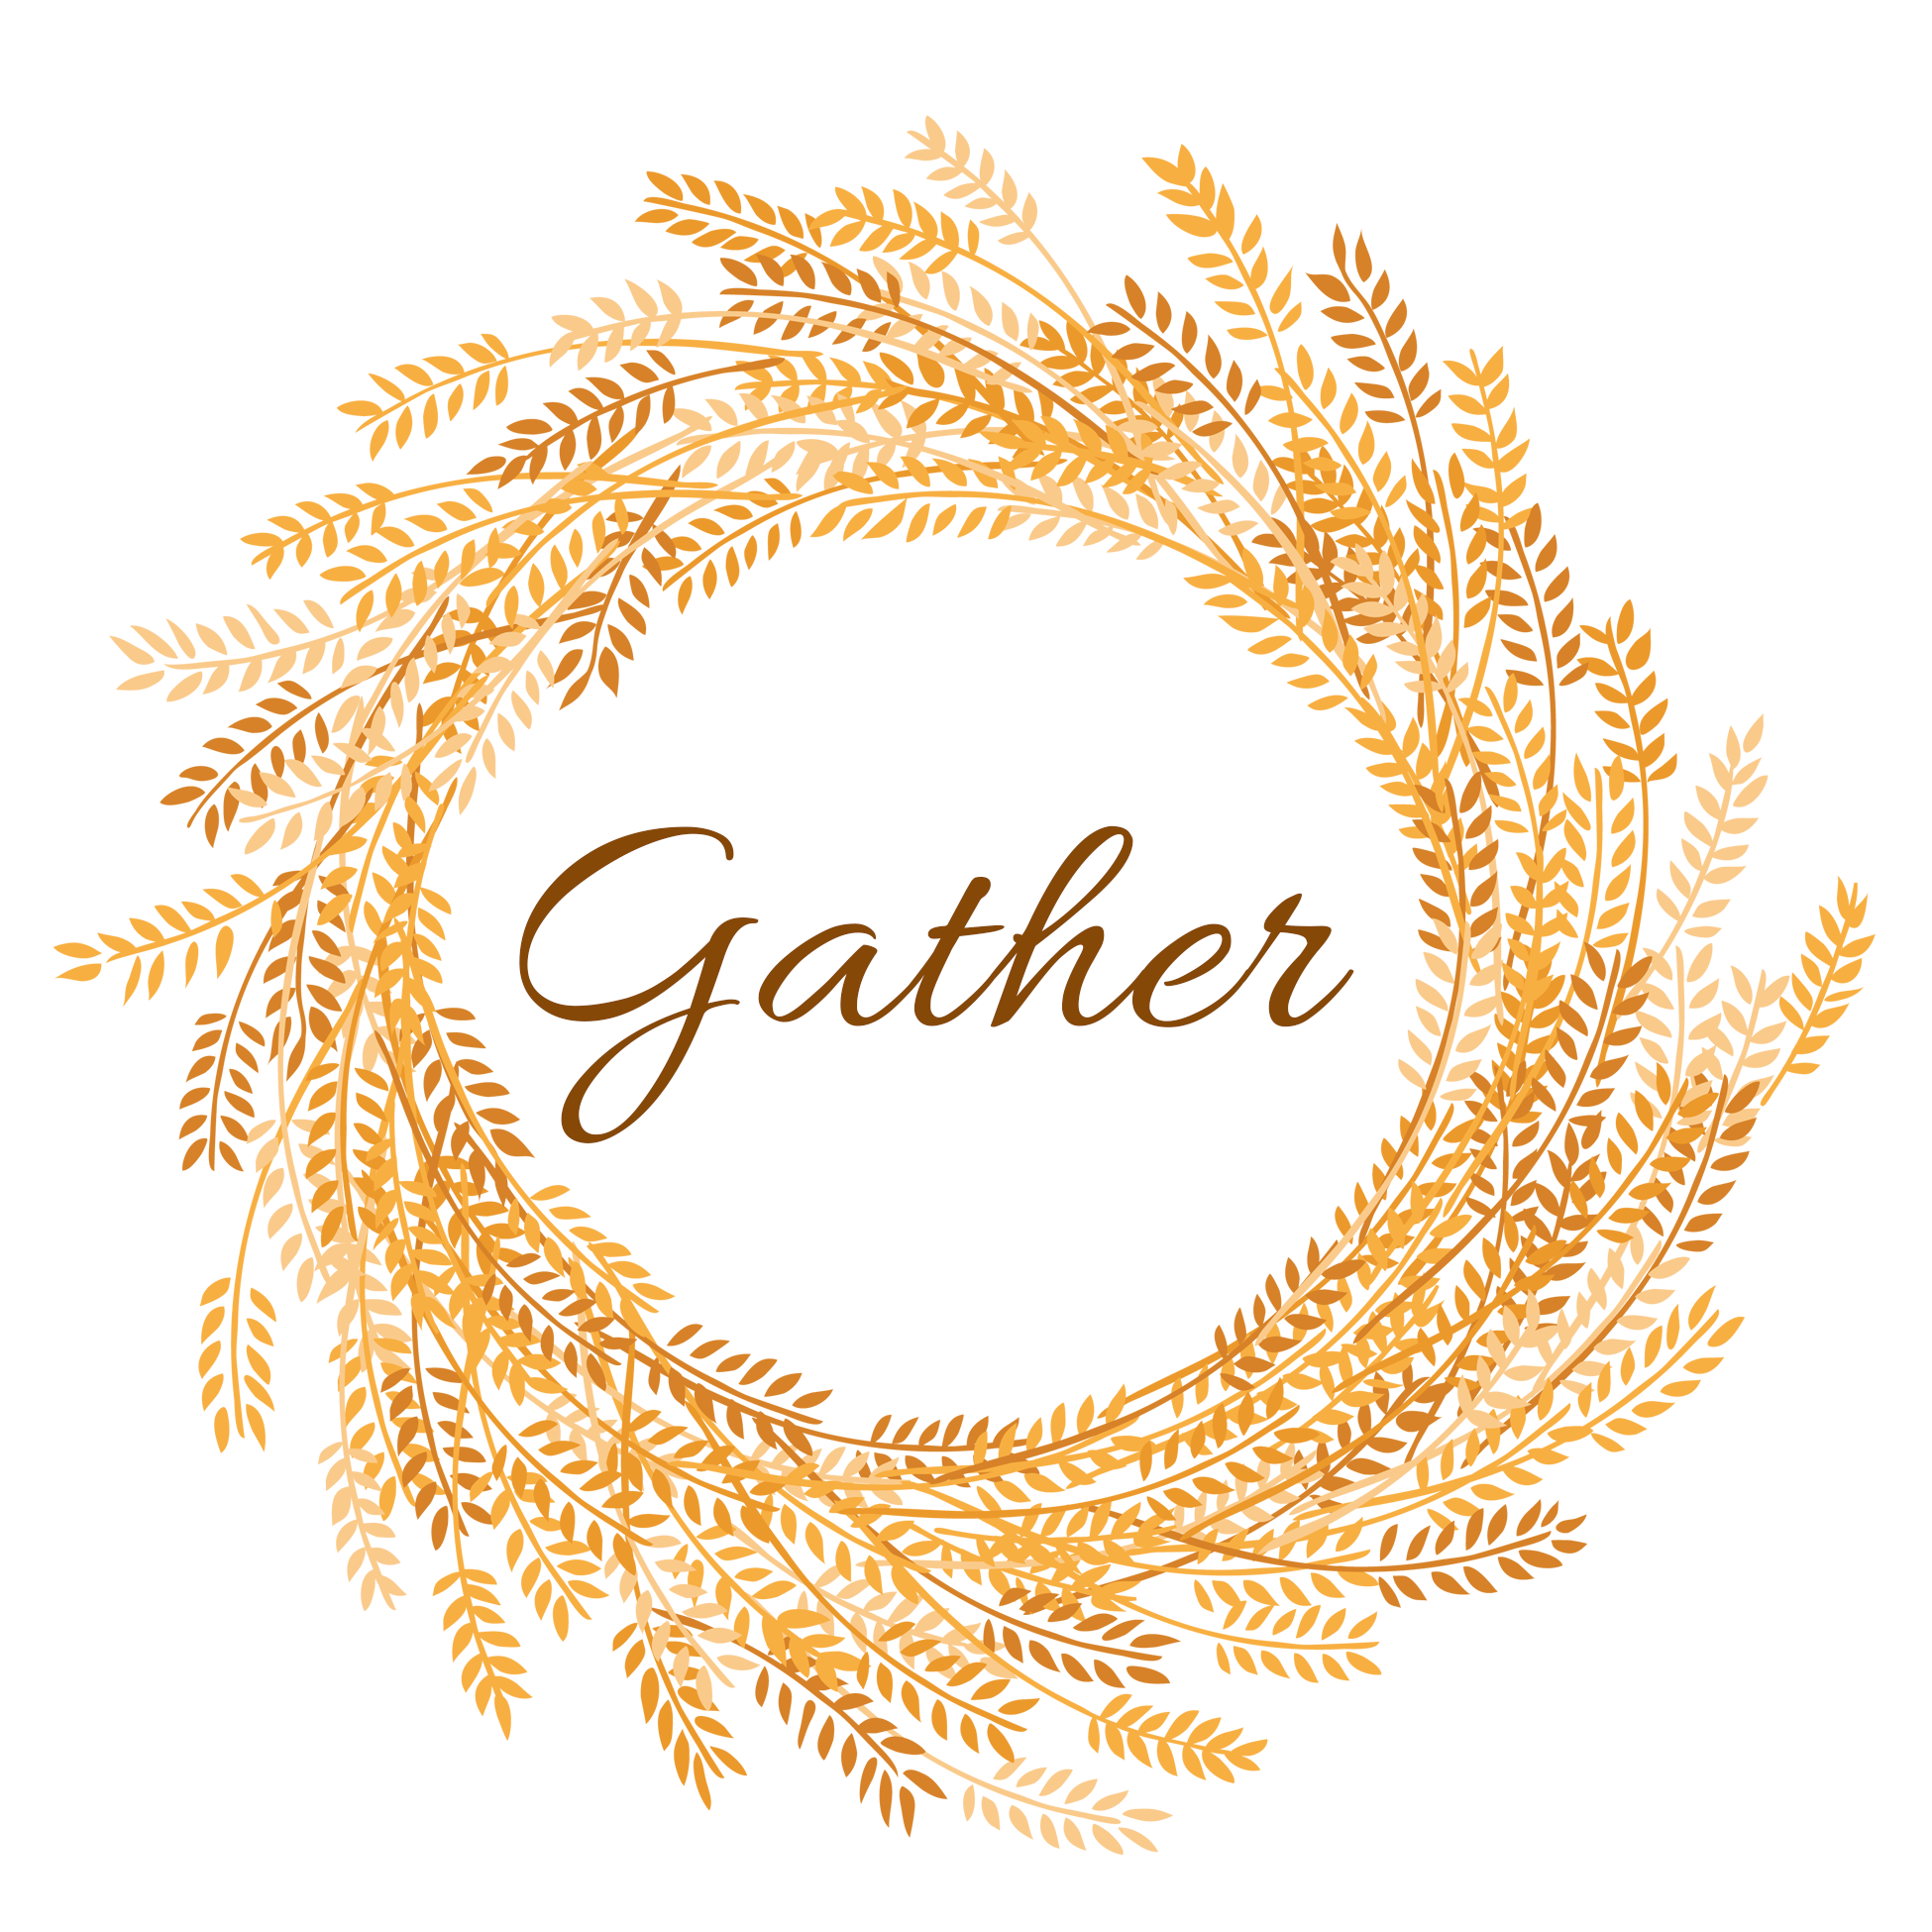 photo relating to Gather Printable named Grateful Absolutely free Printable - A Cup Entire of S